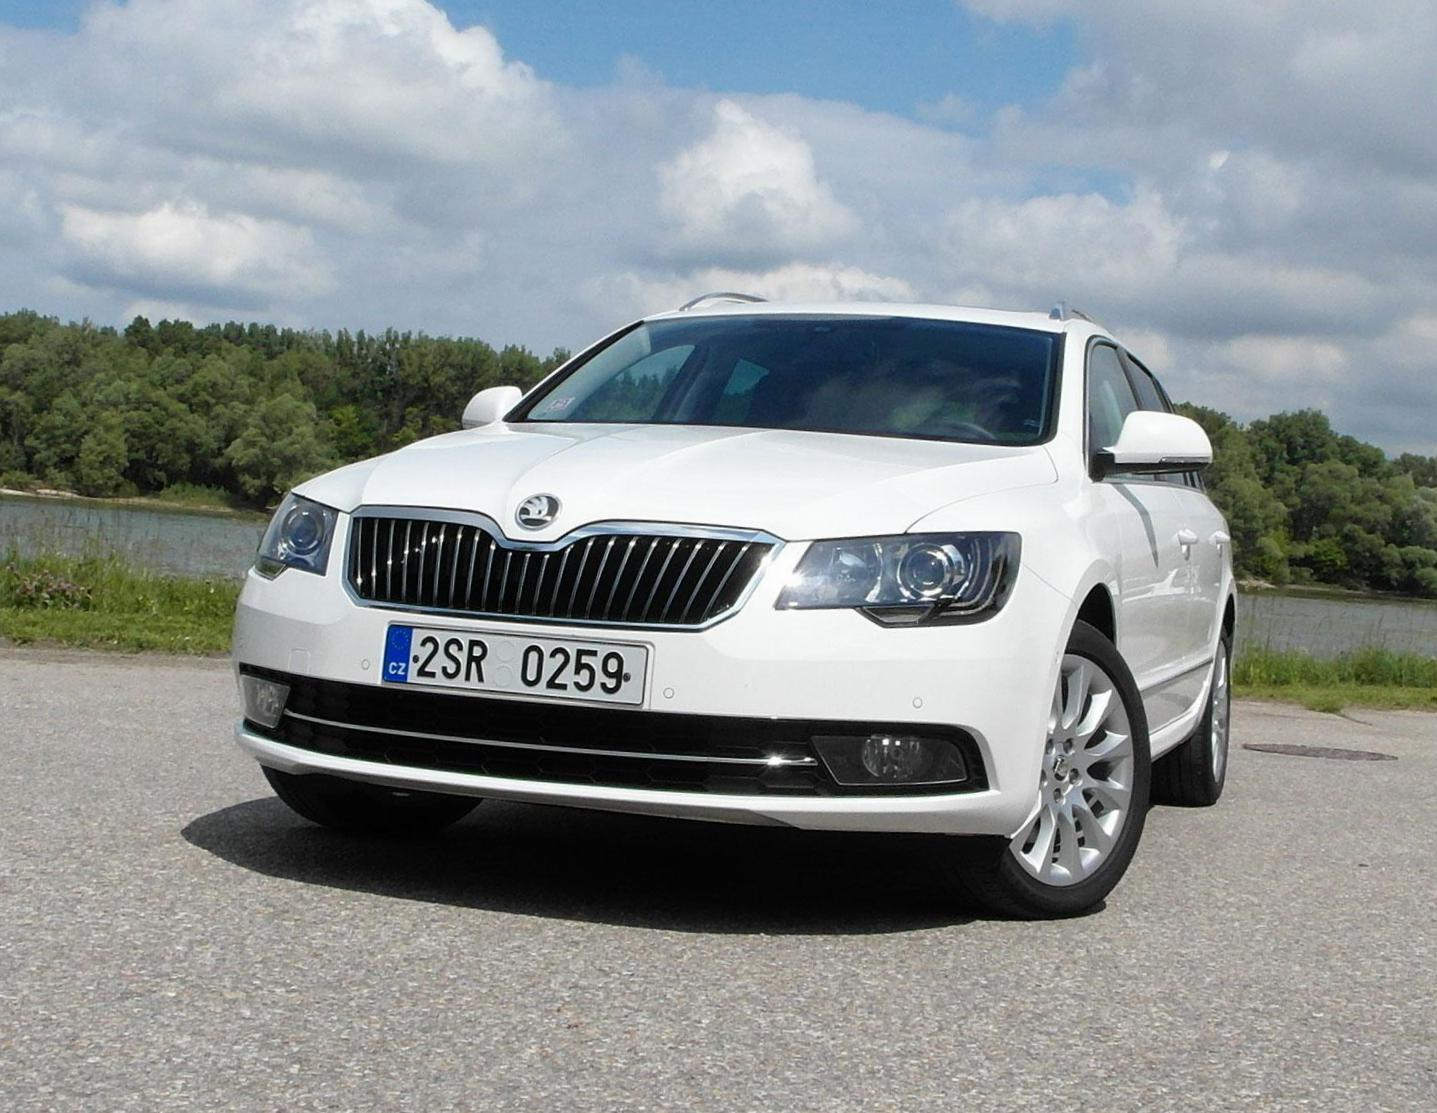 Superb Combi Skoda prices 2014